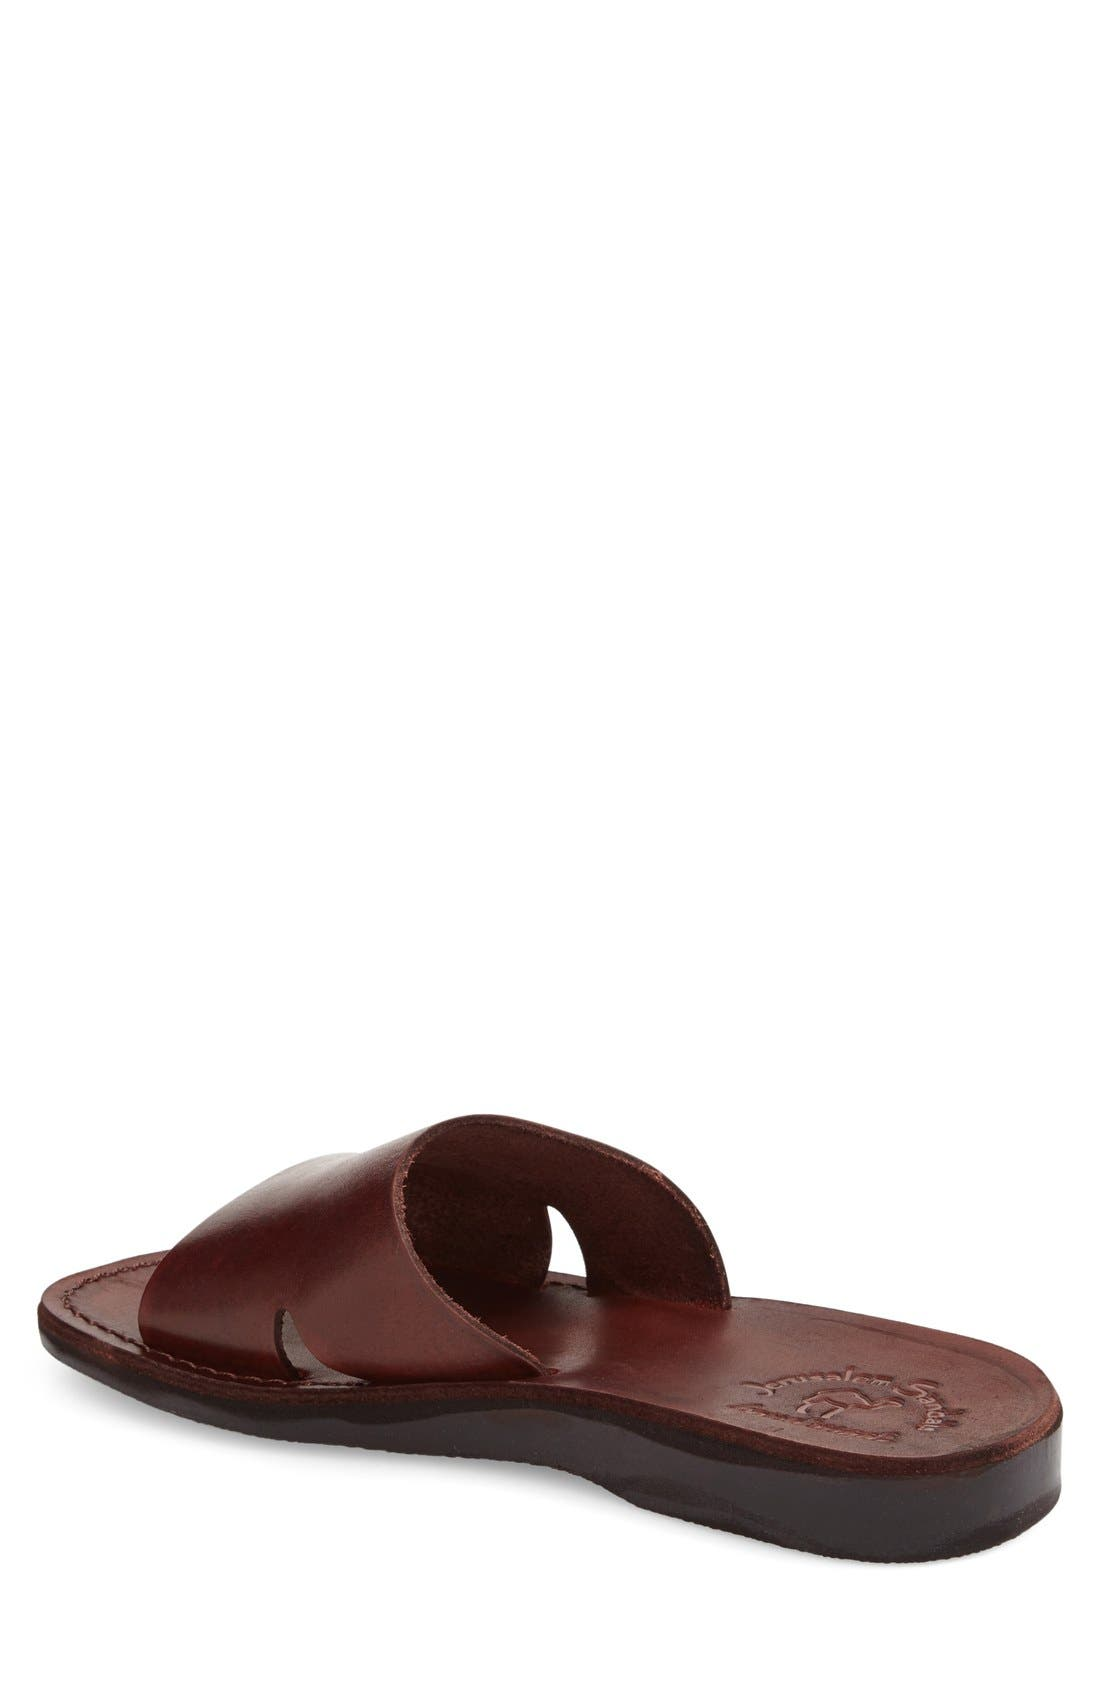 'Bashan' Sandal,                             Alternate thumbnail 2, color,                             Brown Leather